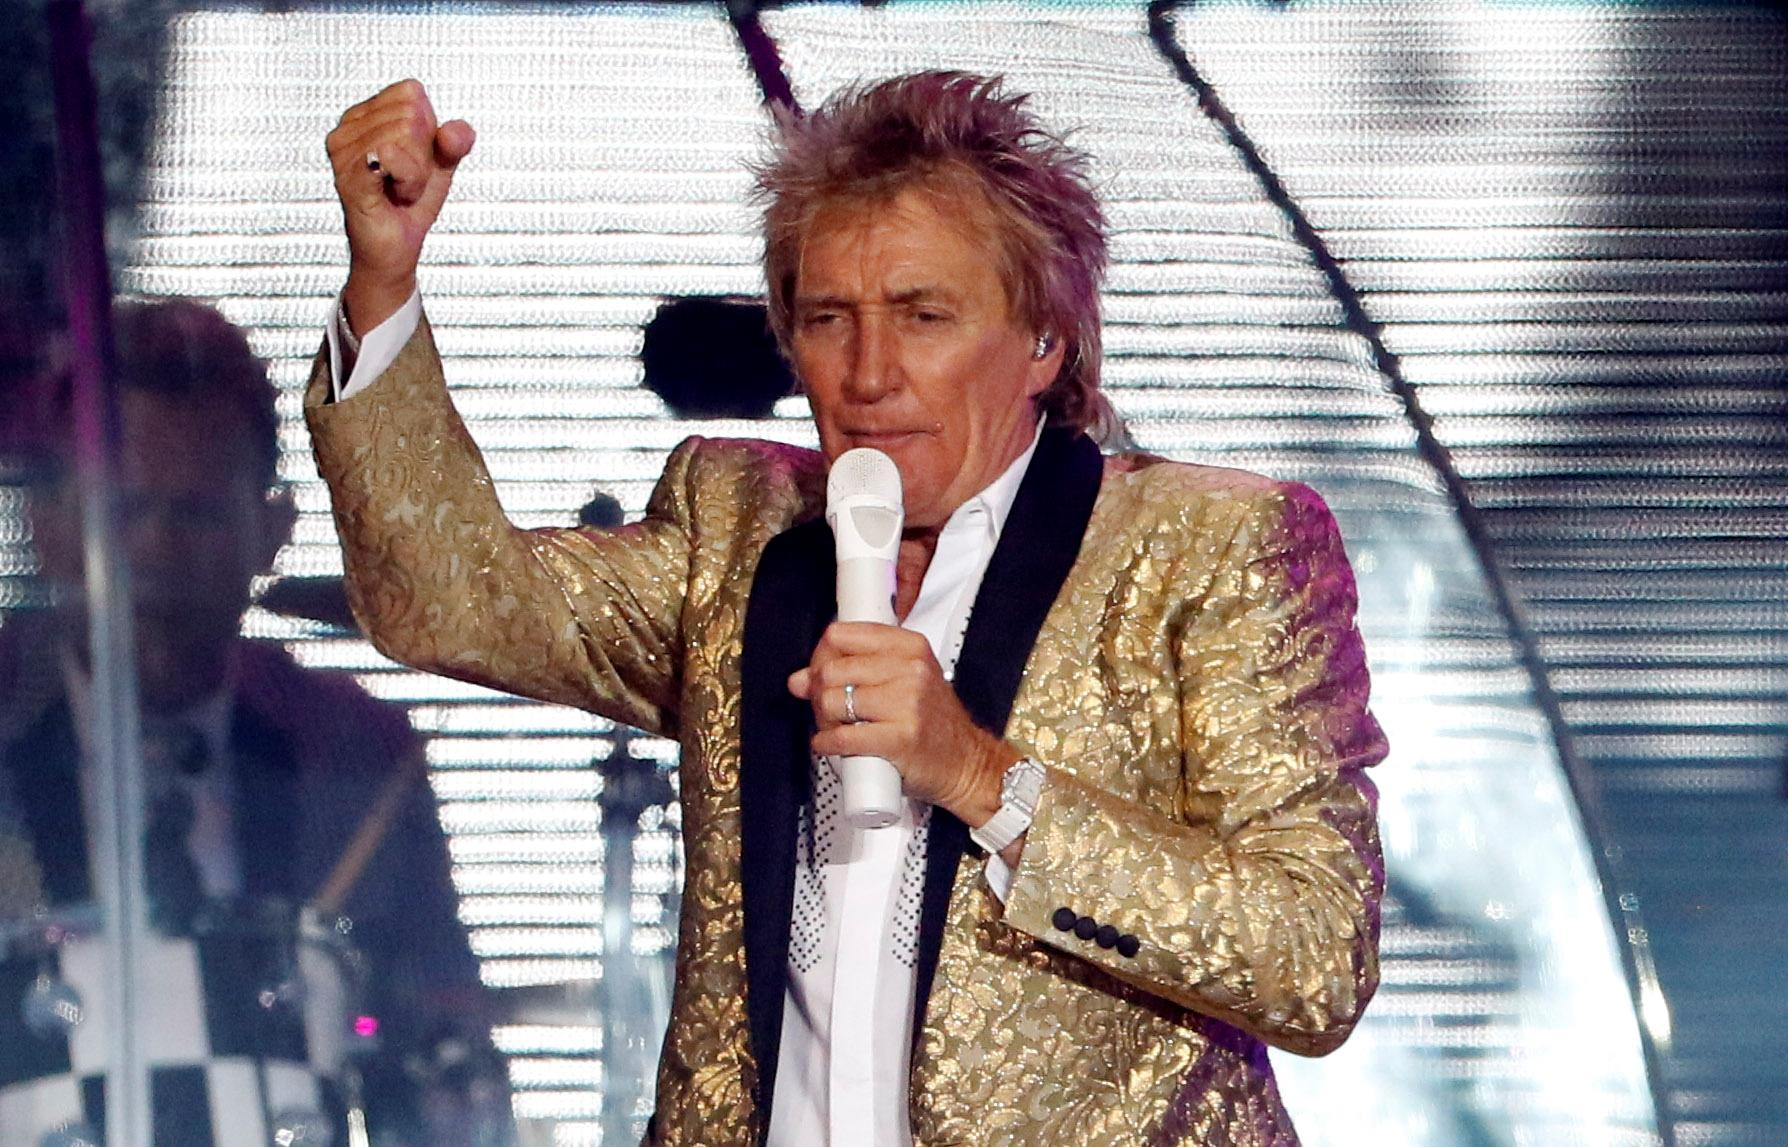 Isle of Wight Festival - Isle of Wight, Britain - 11/06/2017 - Rod Stewart performs as the headline act on the Main Stage during the Isle Of Wight festival in Seaclose Park. REUTERS/Tom Jacobs